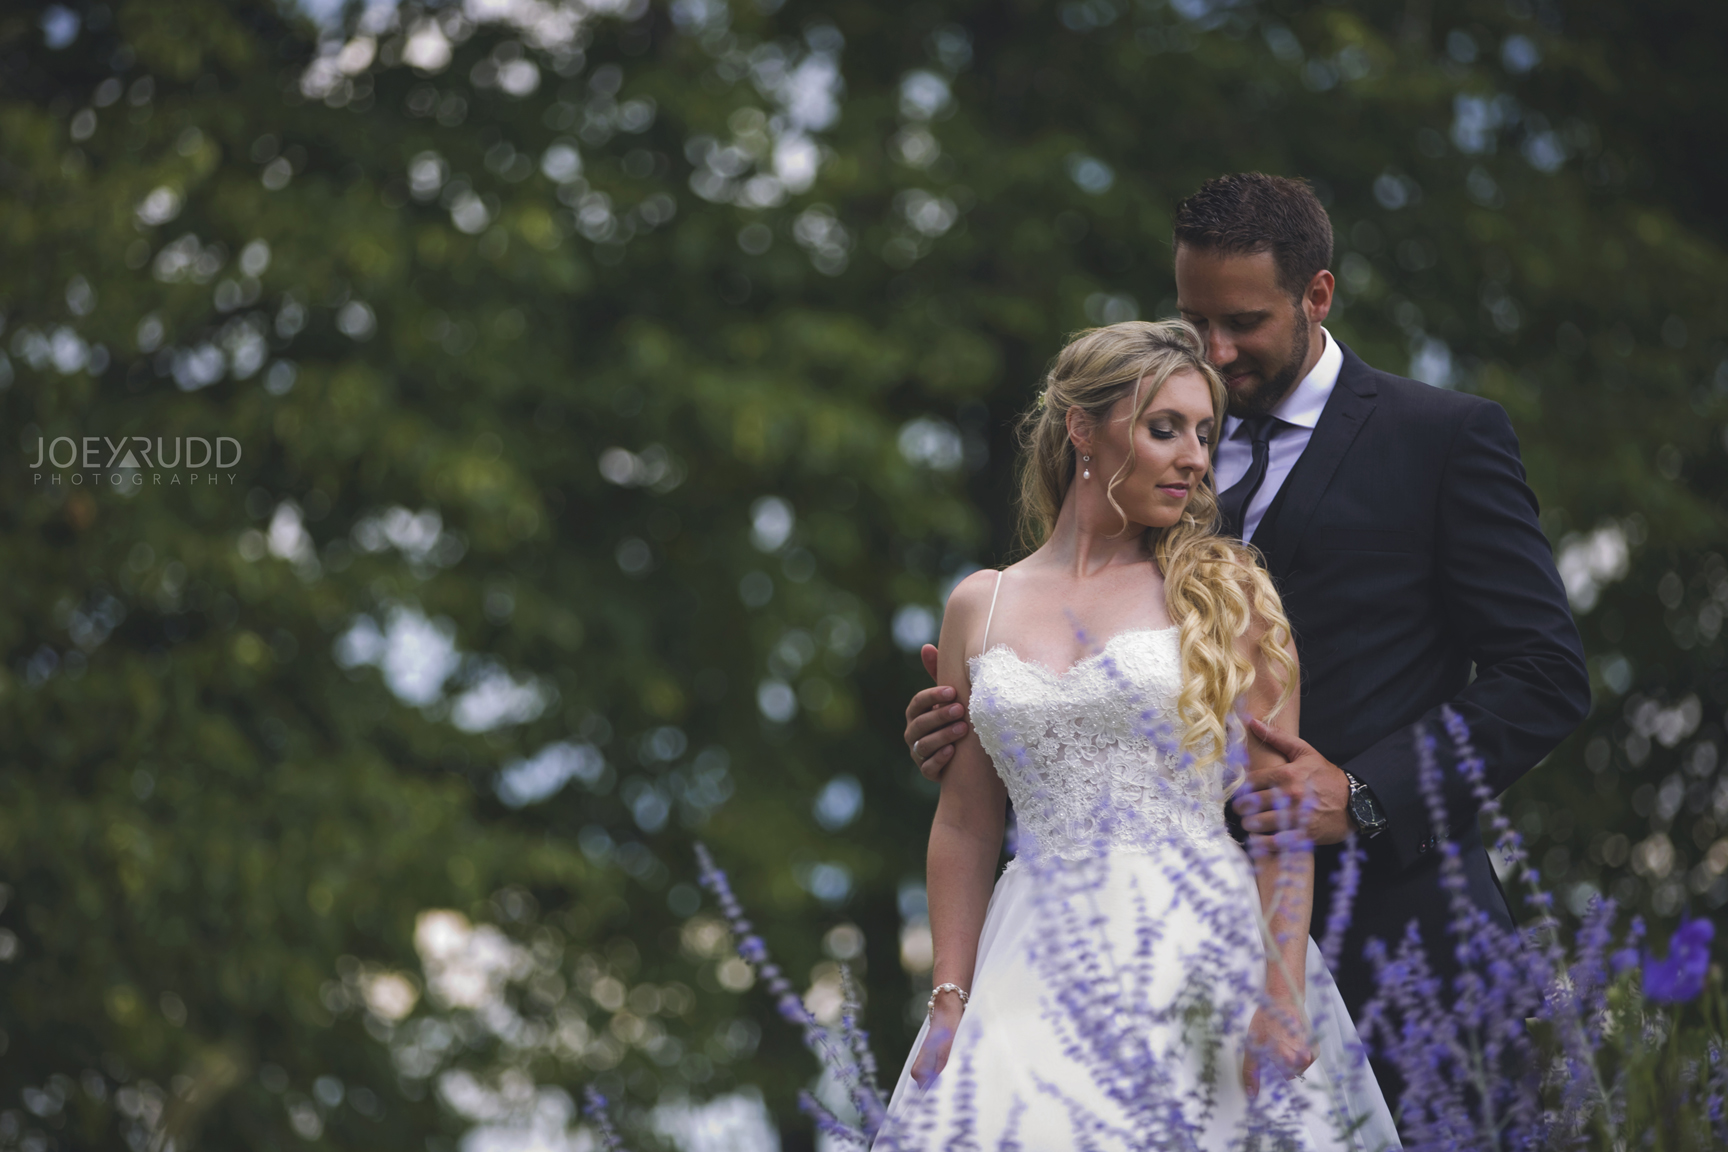 Calabogie Wedding at Barnet Park by Ottawa Wedding Photographer Joey Rudd Photography Flowers